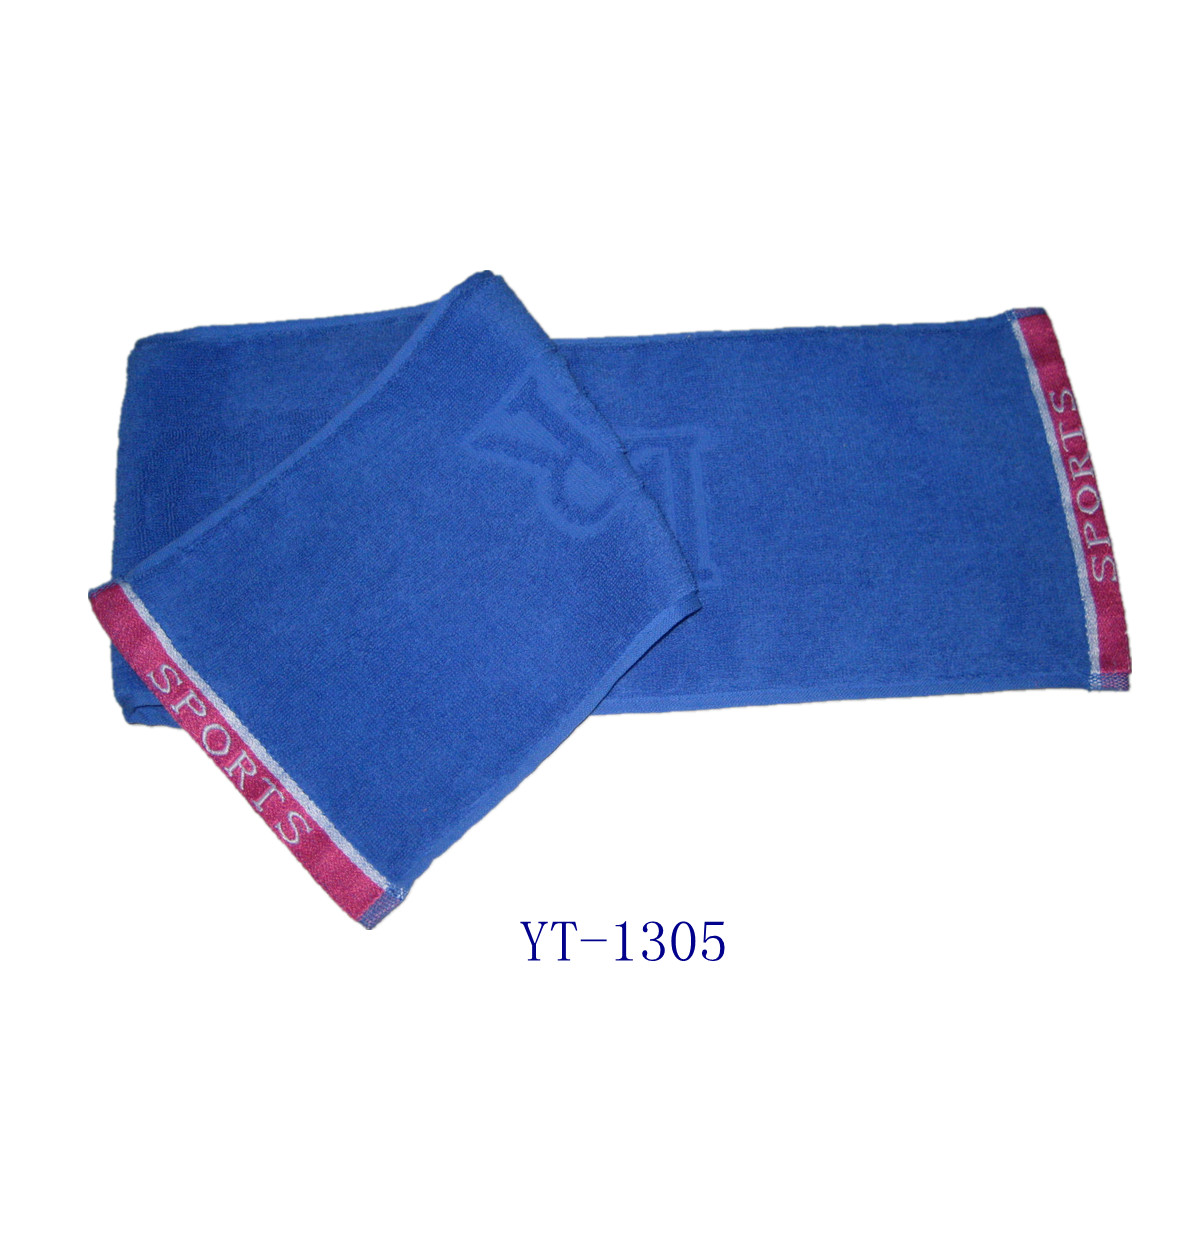 Jacquard Sports Towel, 100% Cotton Material, Blue Color as YT-1305